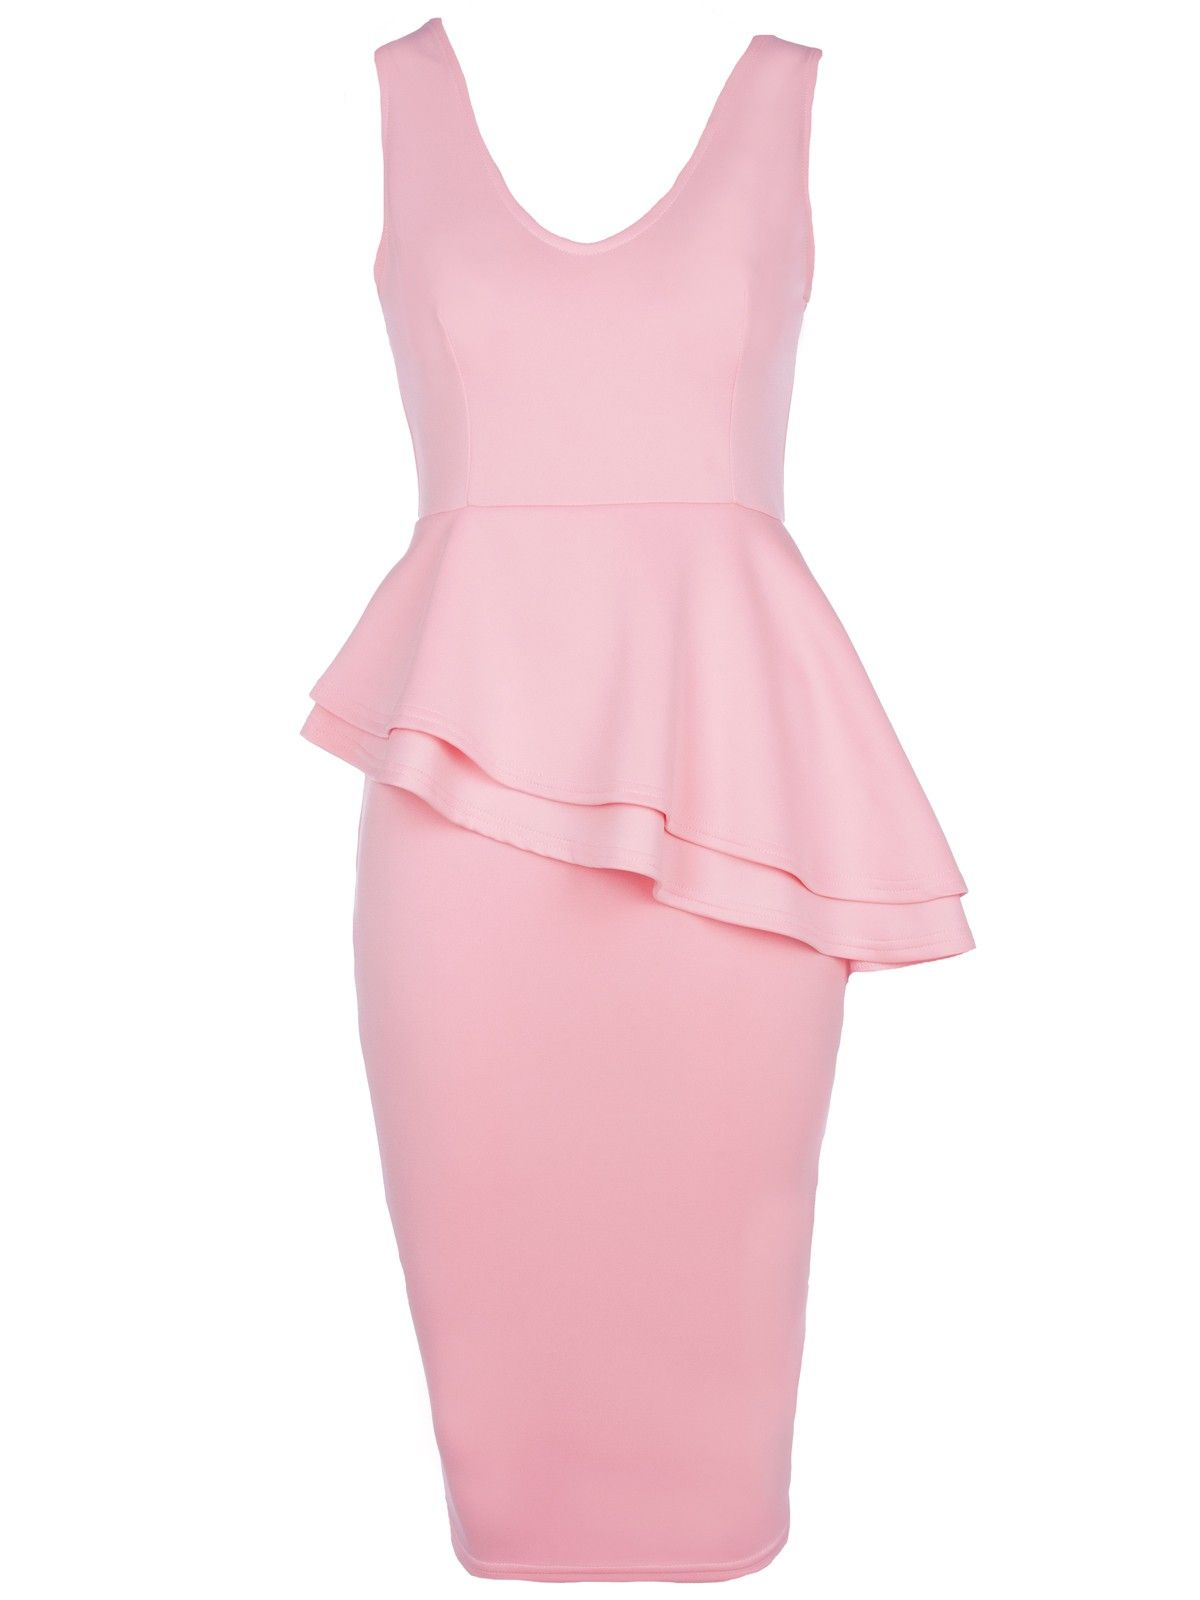 pink peplum jumpsuits | Powder Pink Sleeveless Side Slant Peplum ...